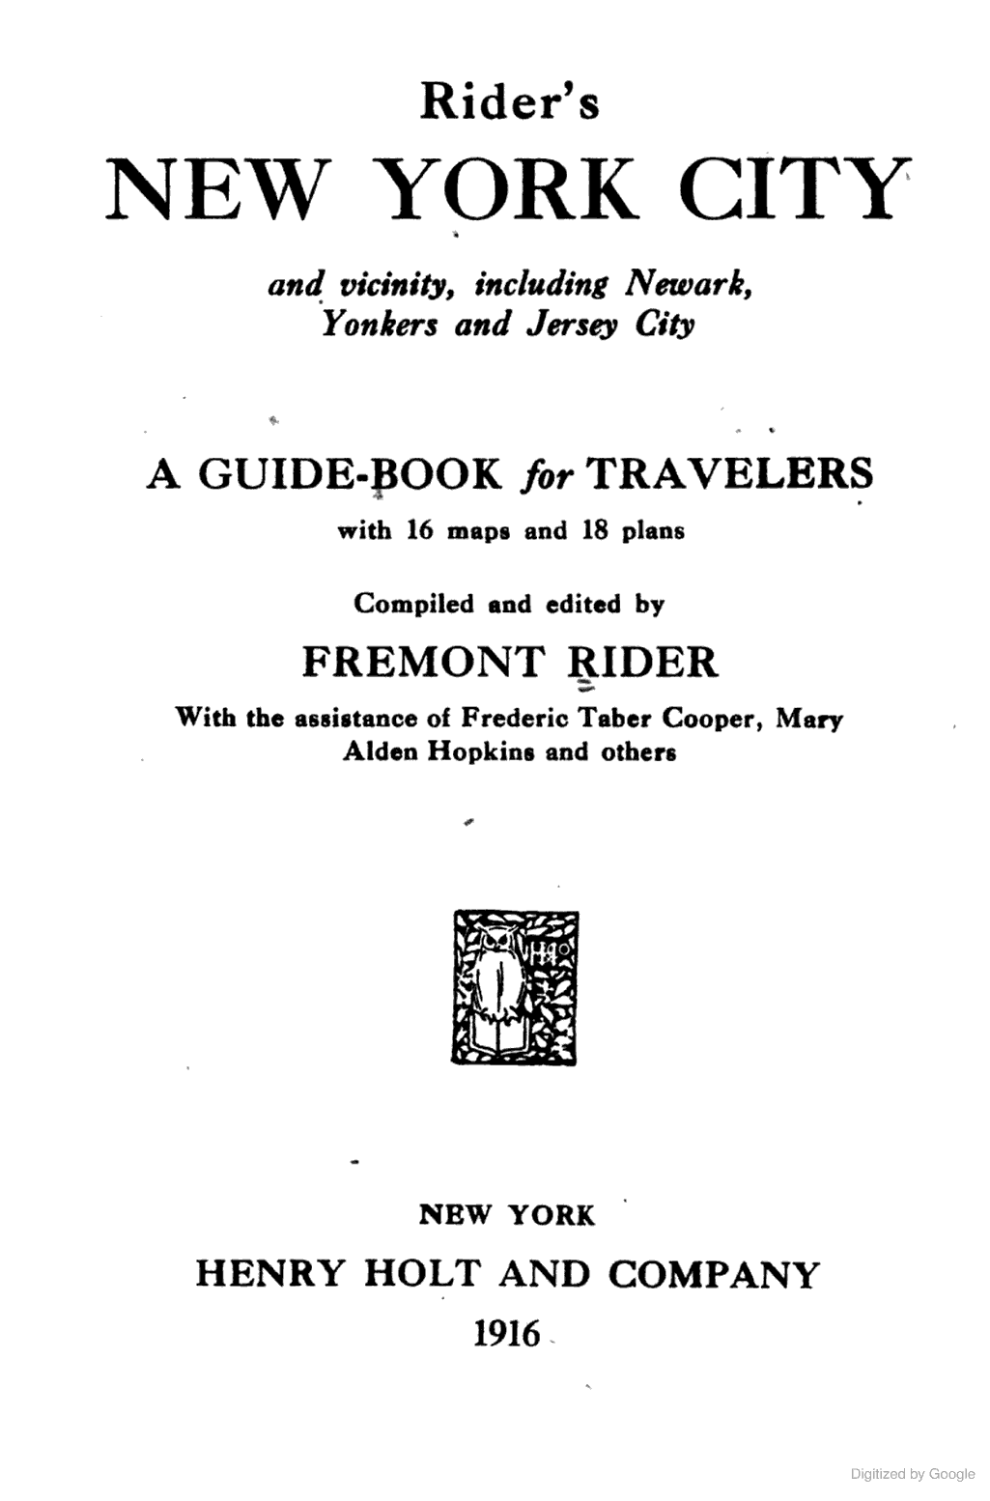 Rider's new york city and vicinity, including newark, yonkers and jersey city by Fremont Rider, Frederic Taber Cooper, Mary Alden Hopkins, and others, Henry holt and company, New York, 1916